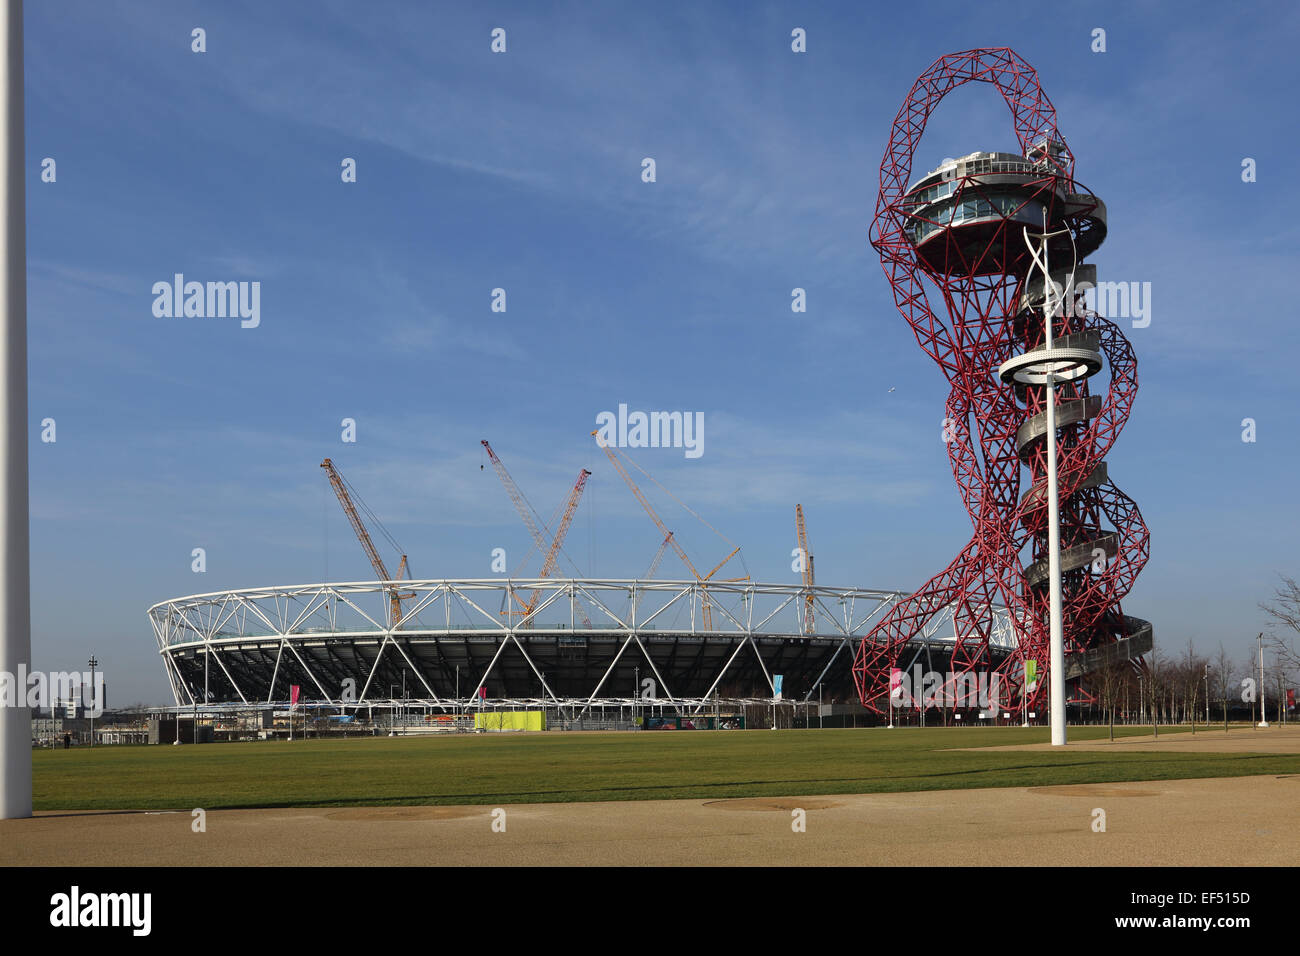 Reconstruction work to the London Olympic stadium. Also shows the ArcelorMittal Orbit observation tower. January 2015 Stock Photo